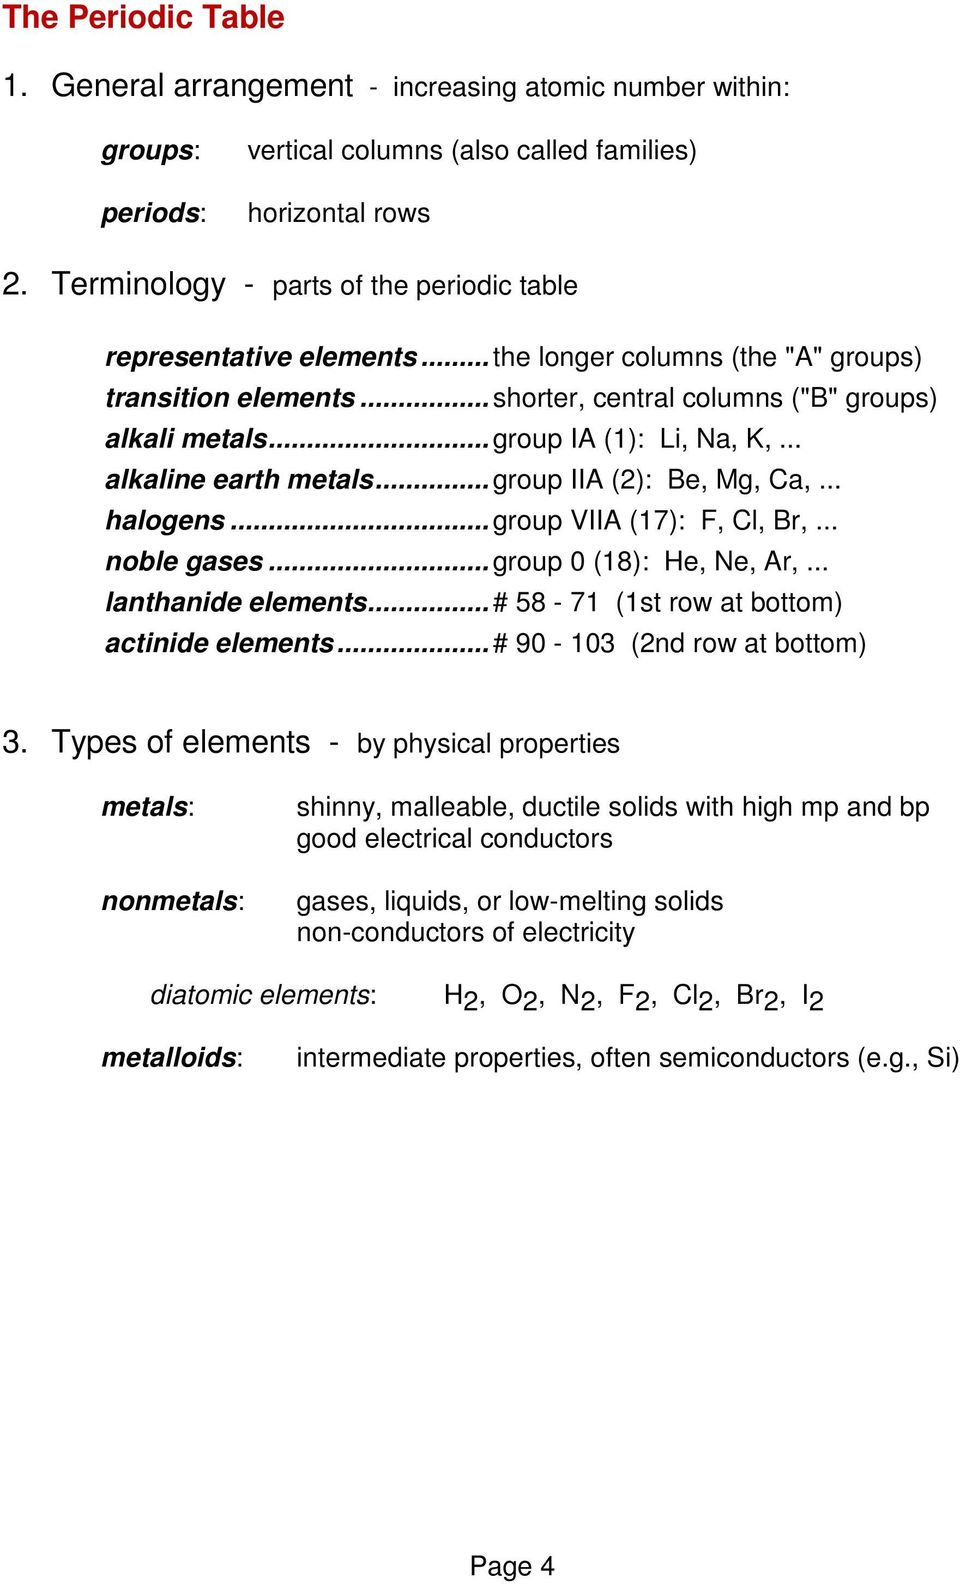 Atoms Elements And The Periodic Table Chapter 2 Pdf